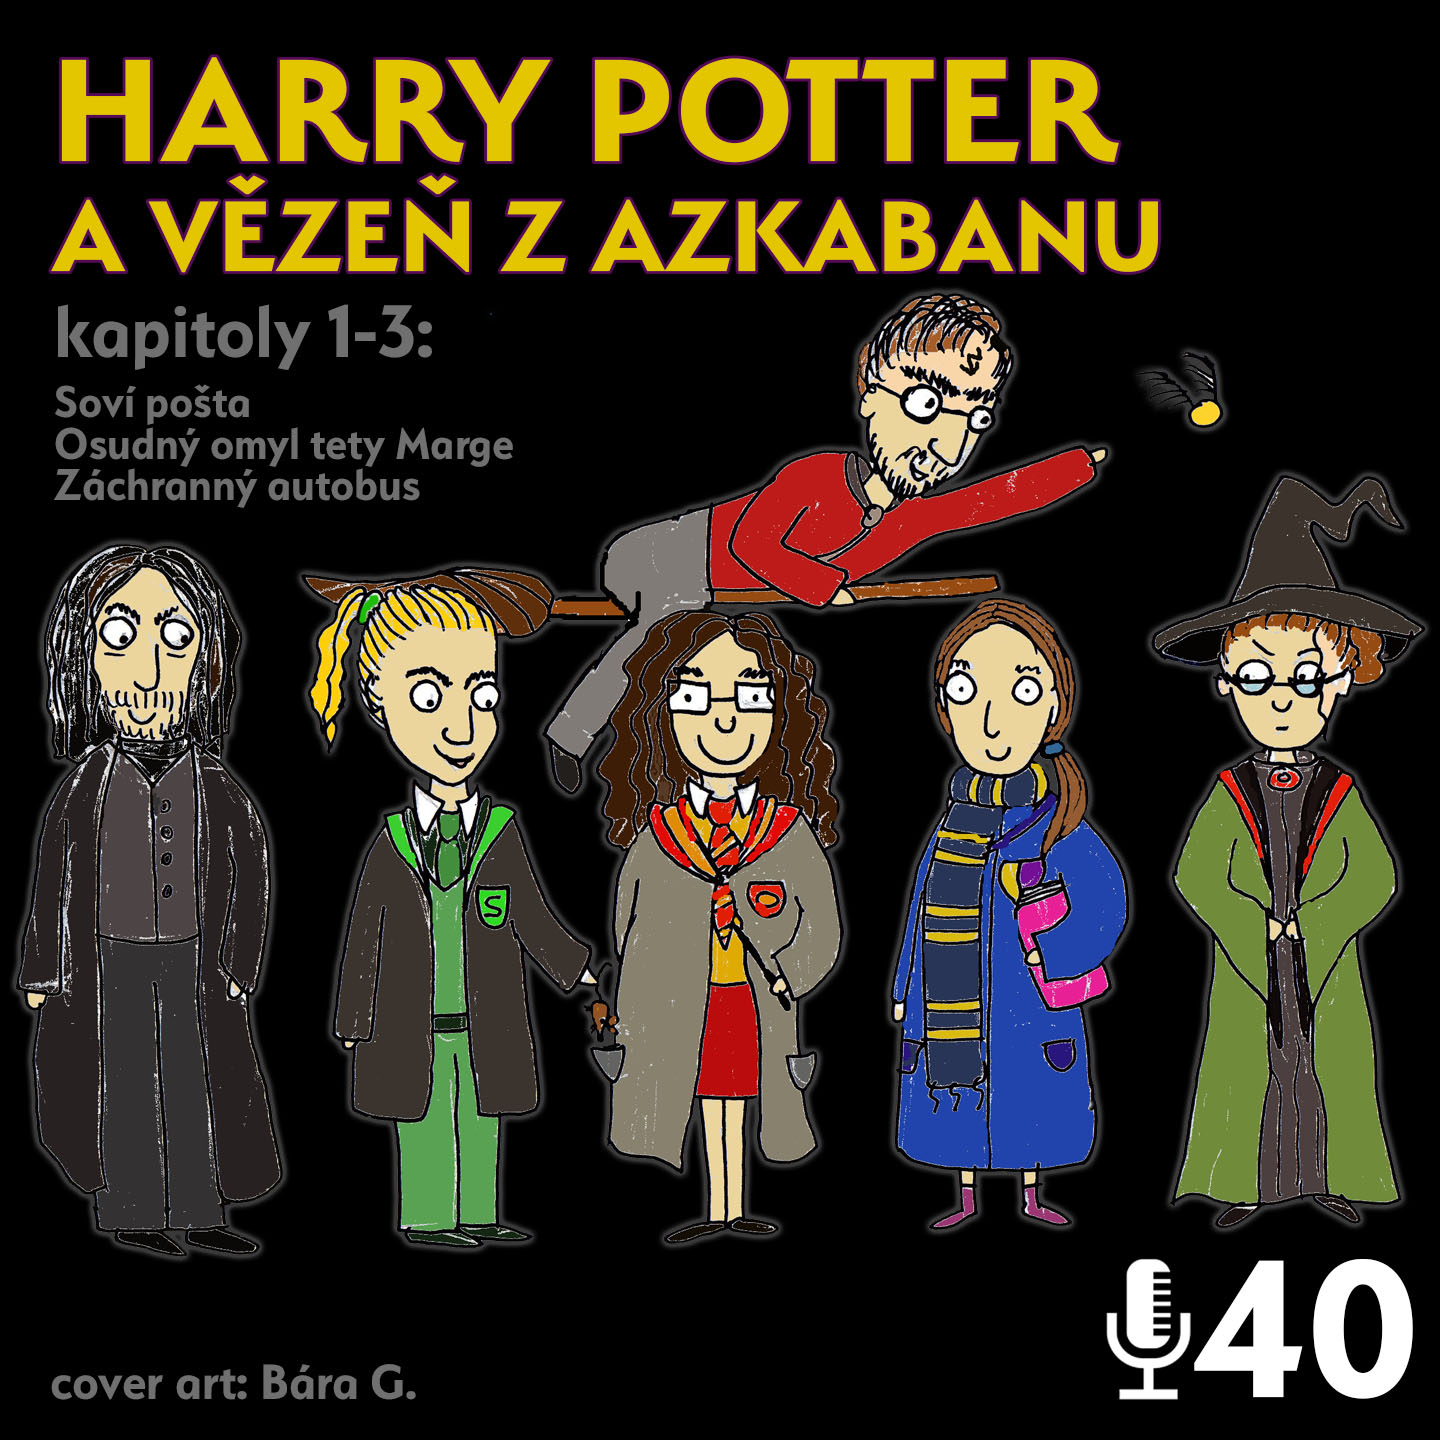 Epizoda 40 - Harry Potter 3.1